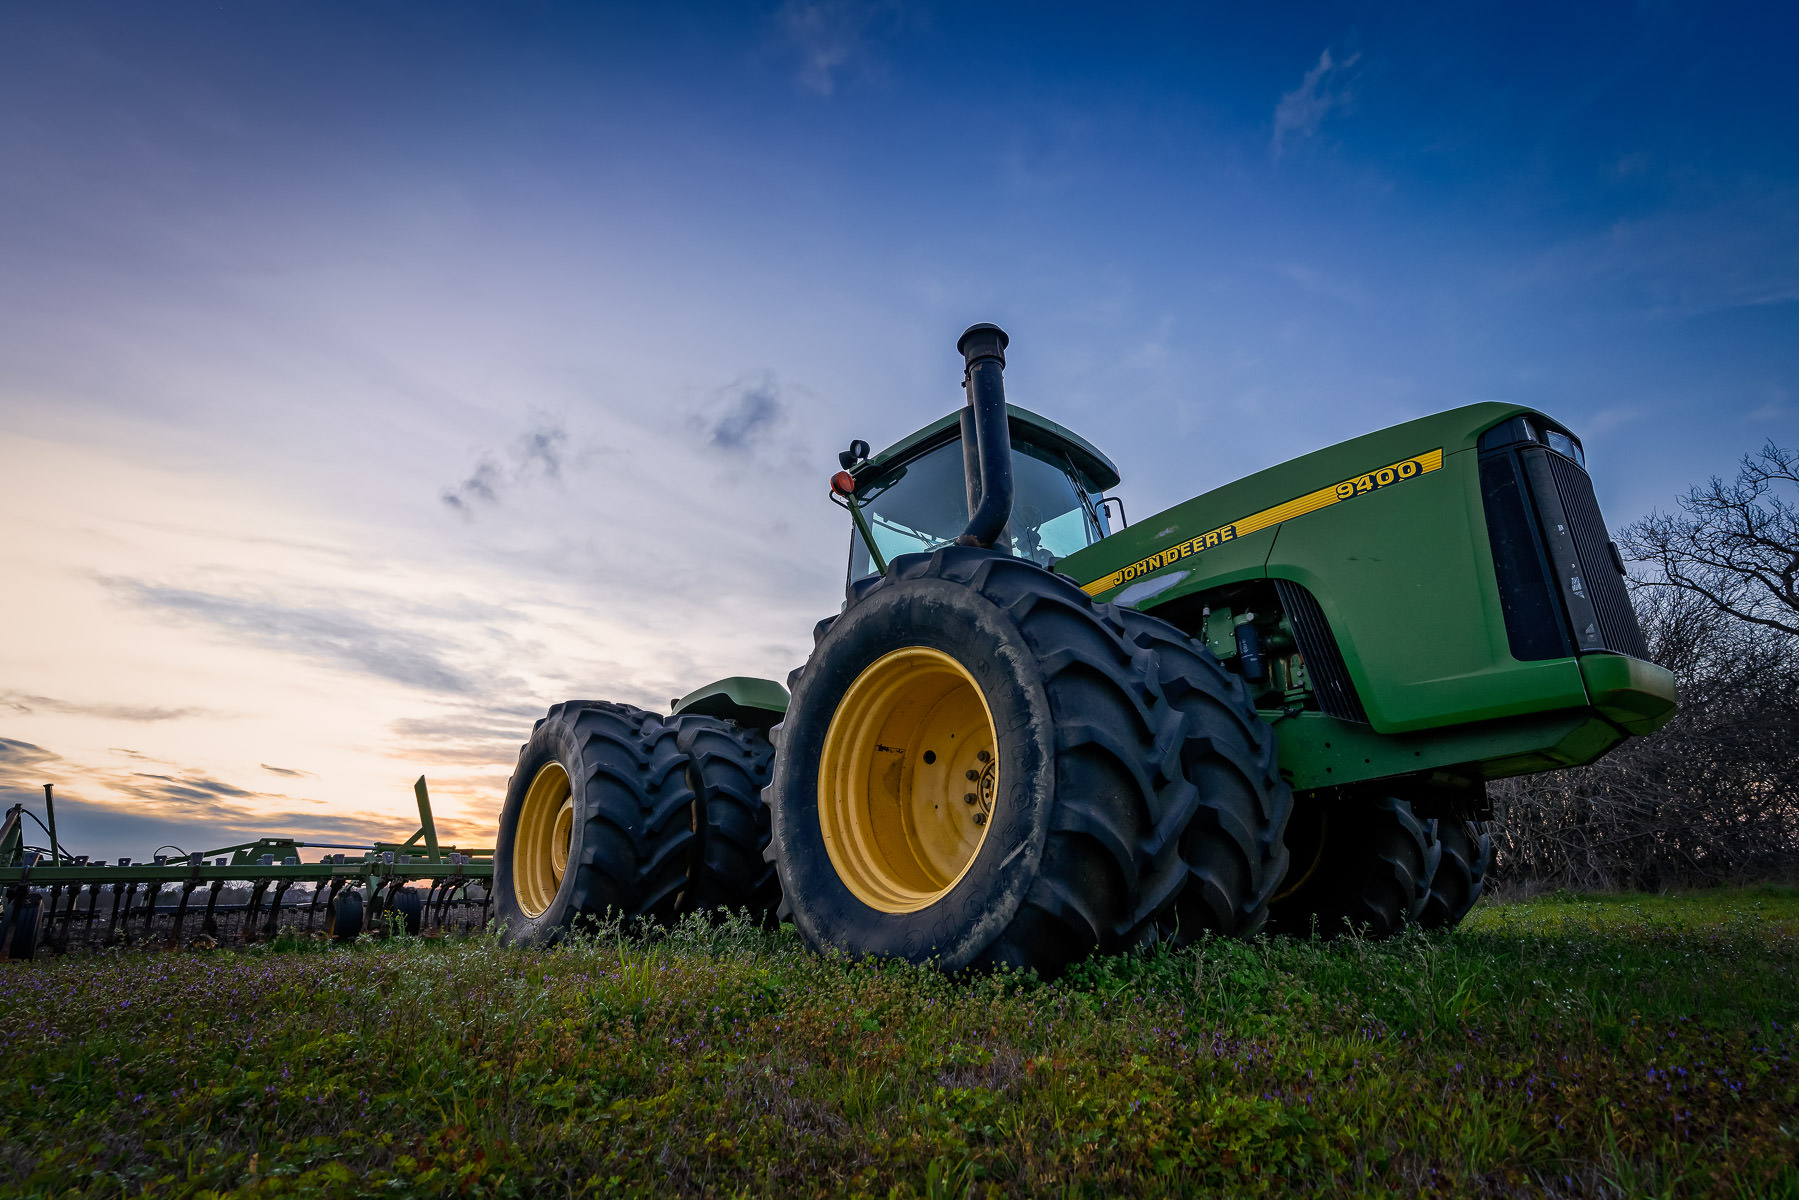 A John Deere tractor spotted on a McKinney, Texas, farm.